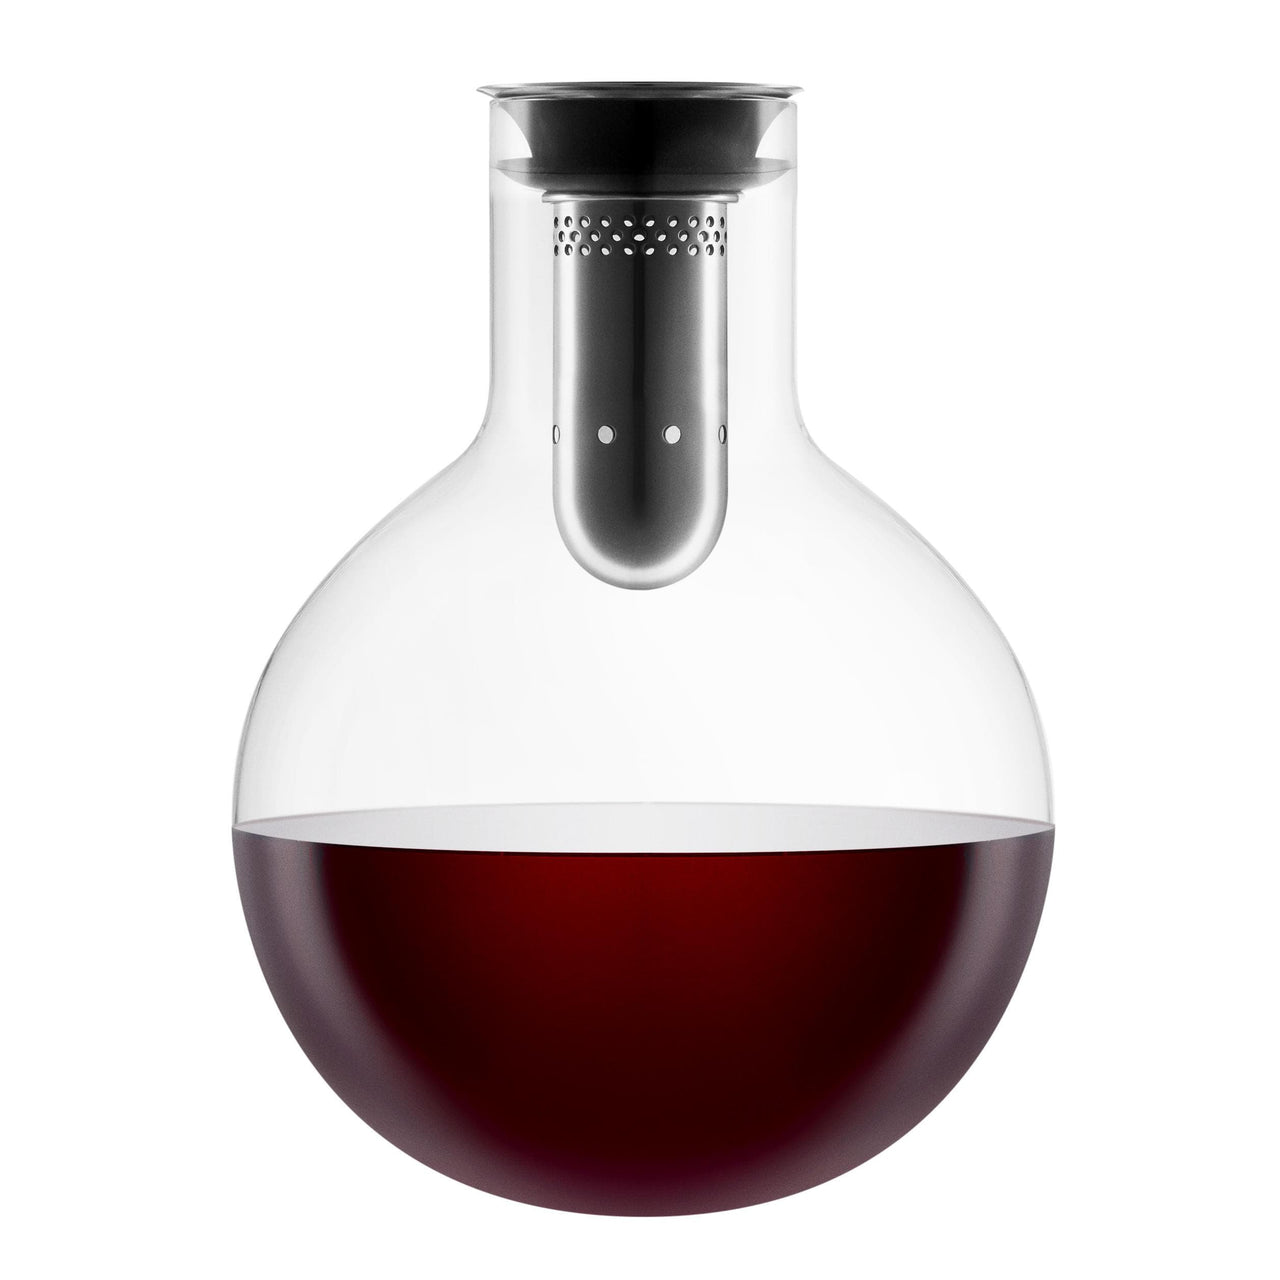 Eva Solo Bar Accessories & Tools Wine Decanter Carafe